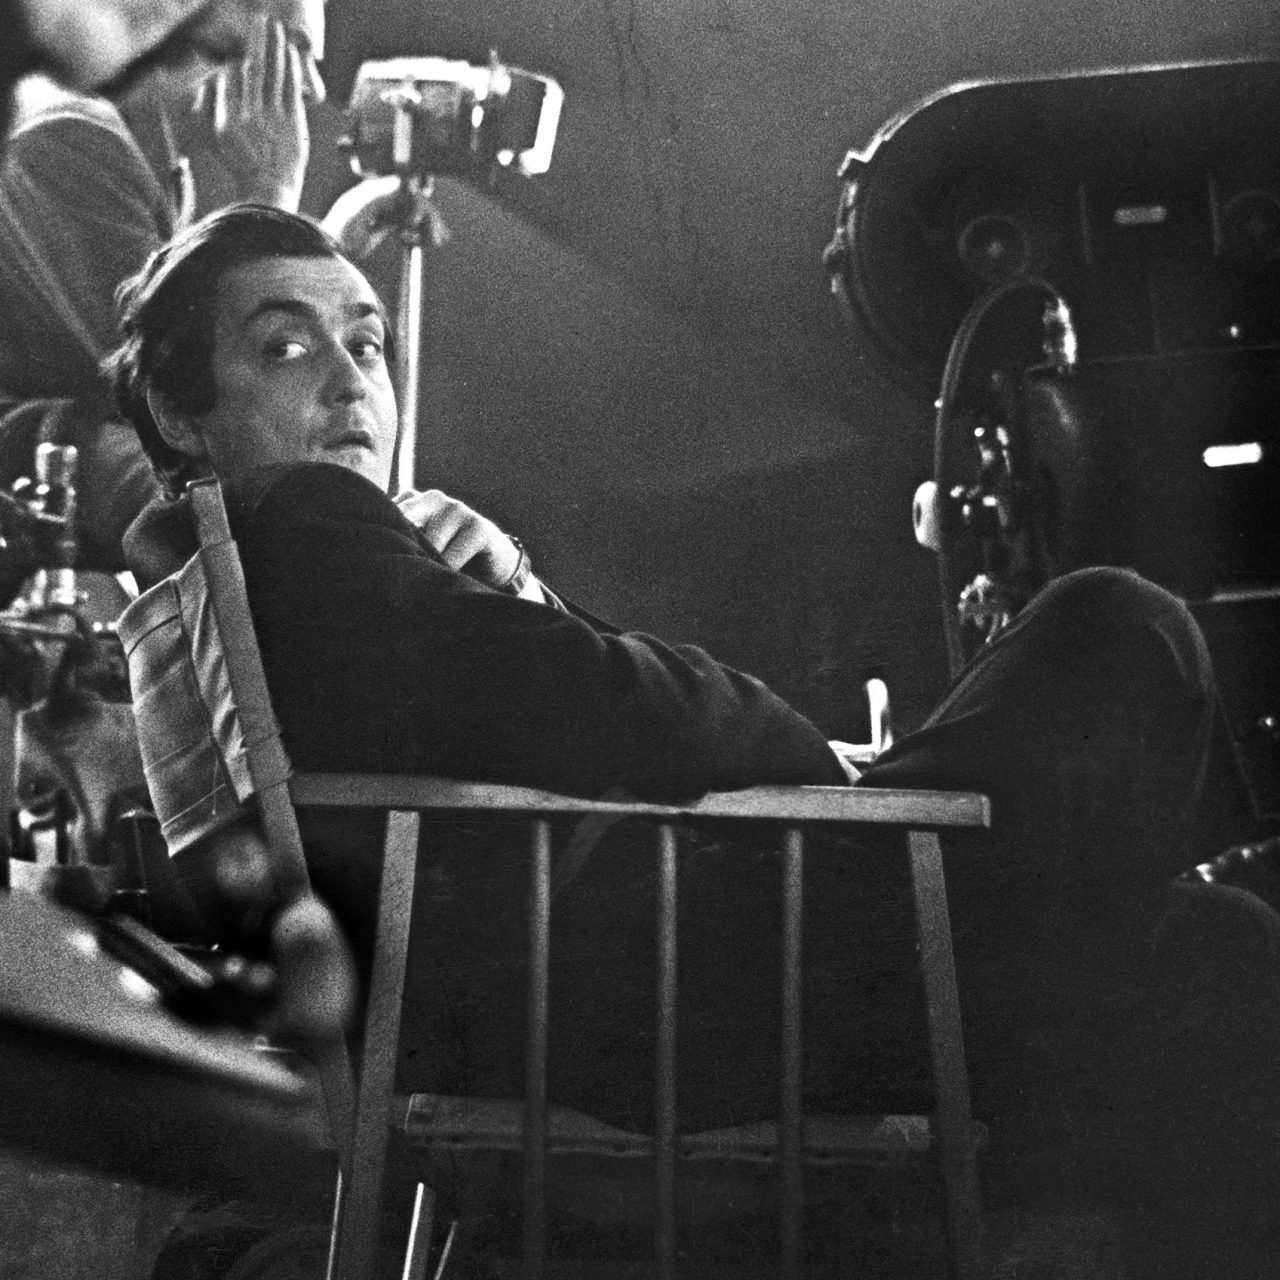 Too pinko for Dan or How Slim Pickens replaced Peter Sellers as Major Kong in Dr. Strangelove